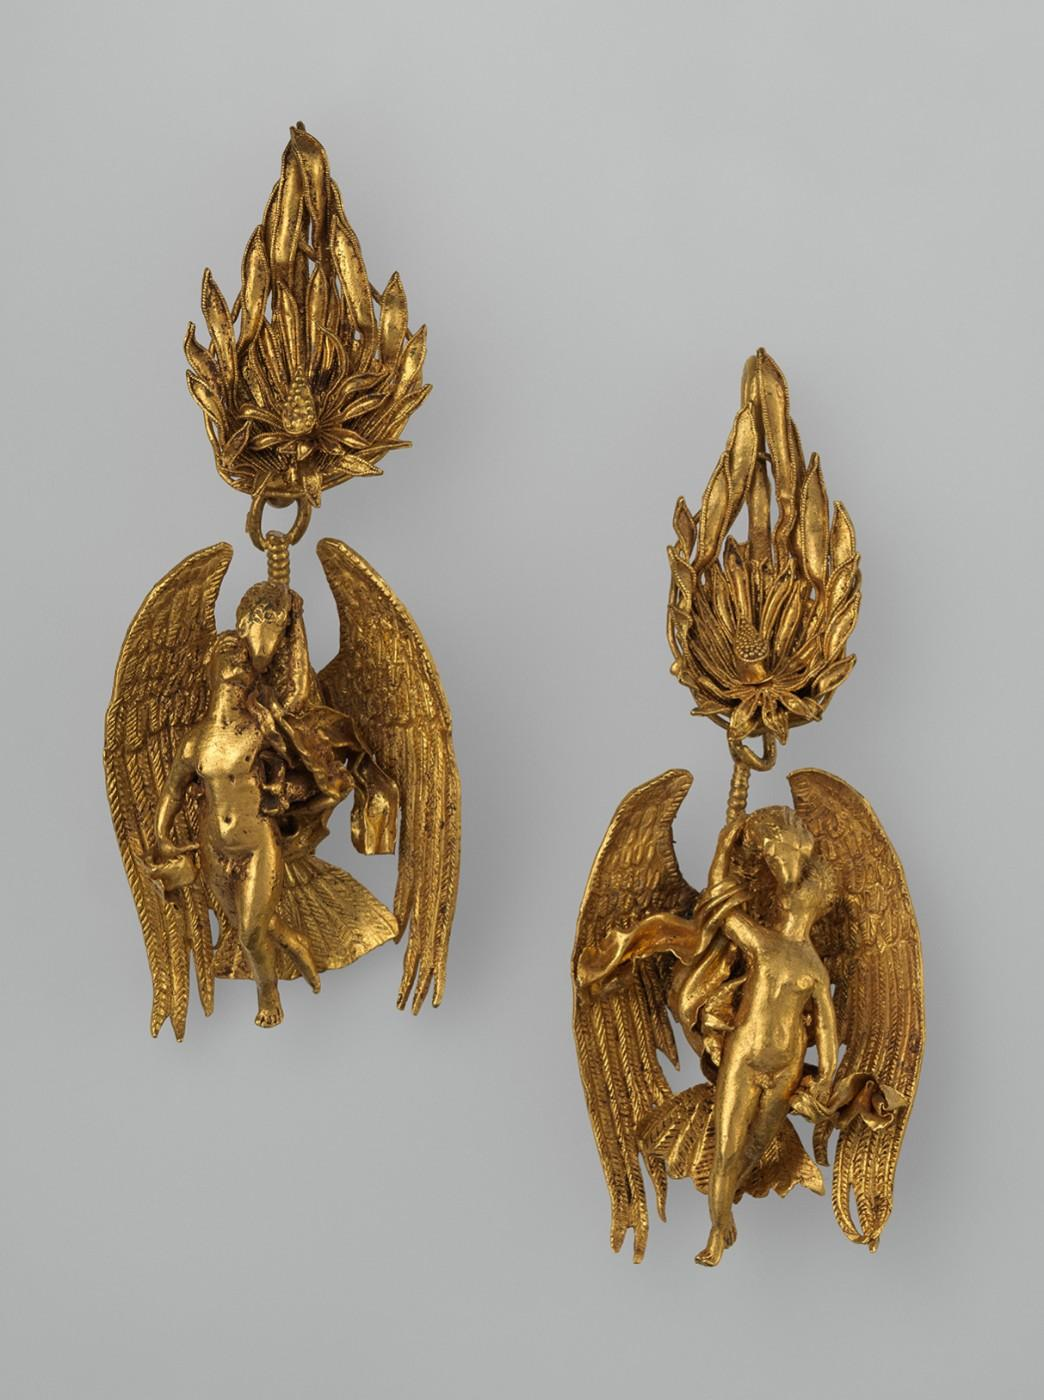 Pair of gold earrings with Ganymede and the eagle.